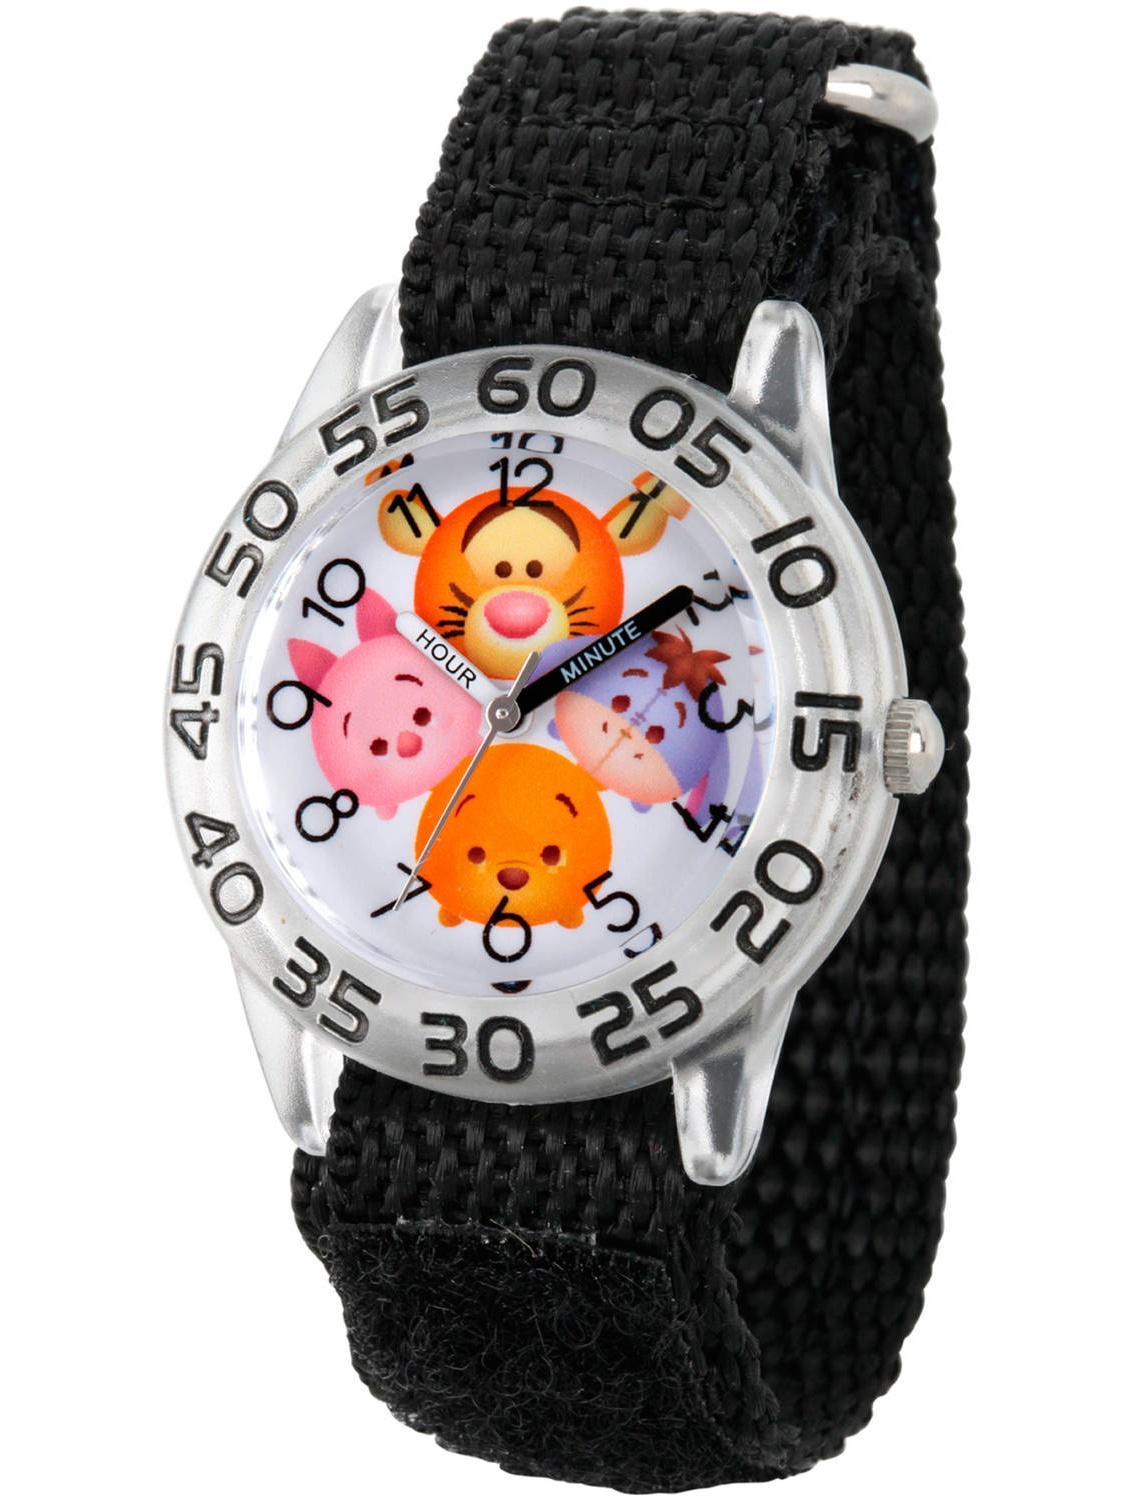 Tsum Tsum, Tigger, Pooh, Goofy, Eeyore and Piglet Boys' Clear Plastic Time Teacher Watch, Black Hook and Loop Nylon Strap with Black Backing